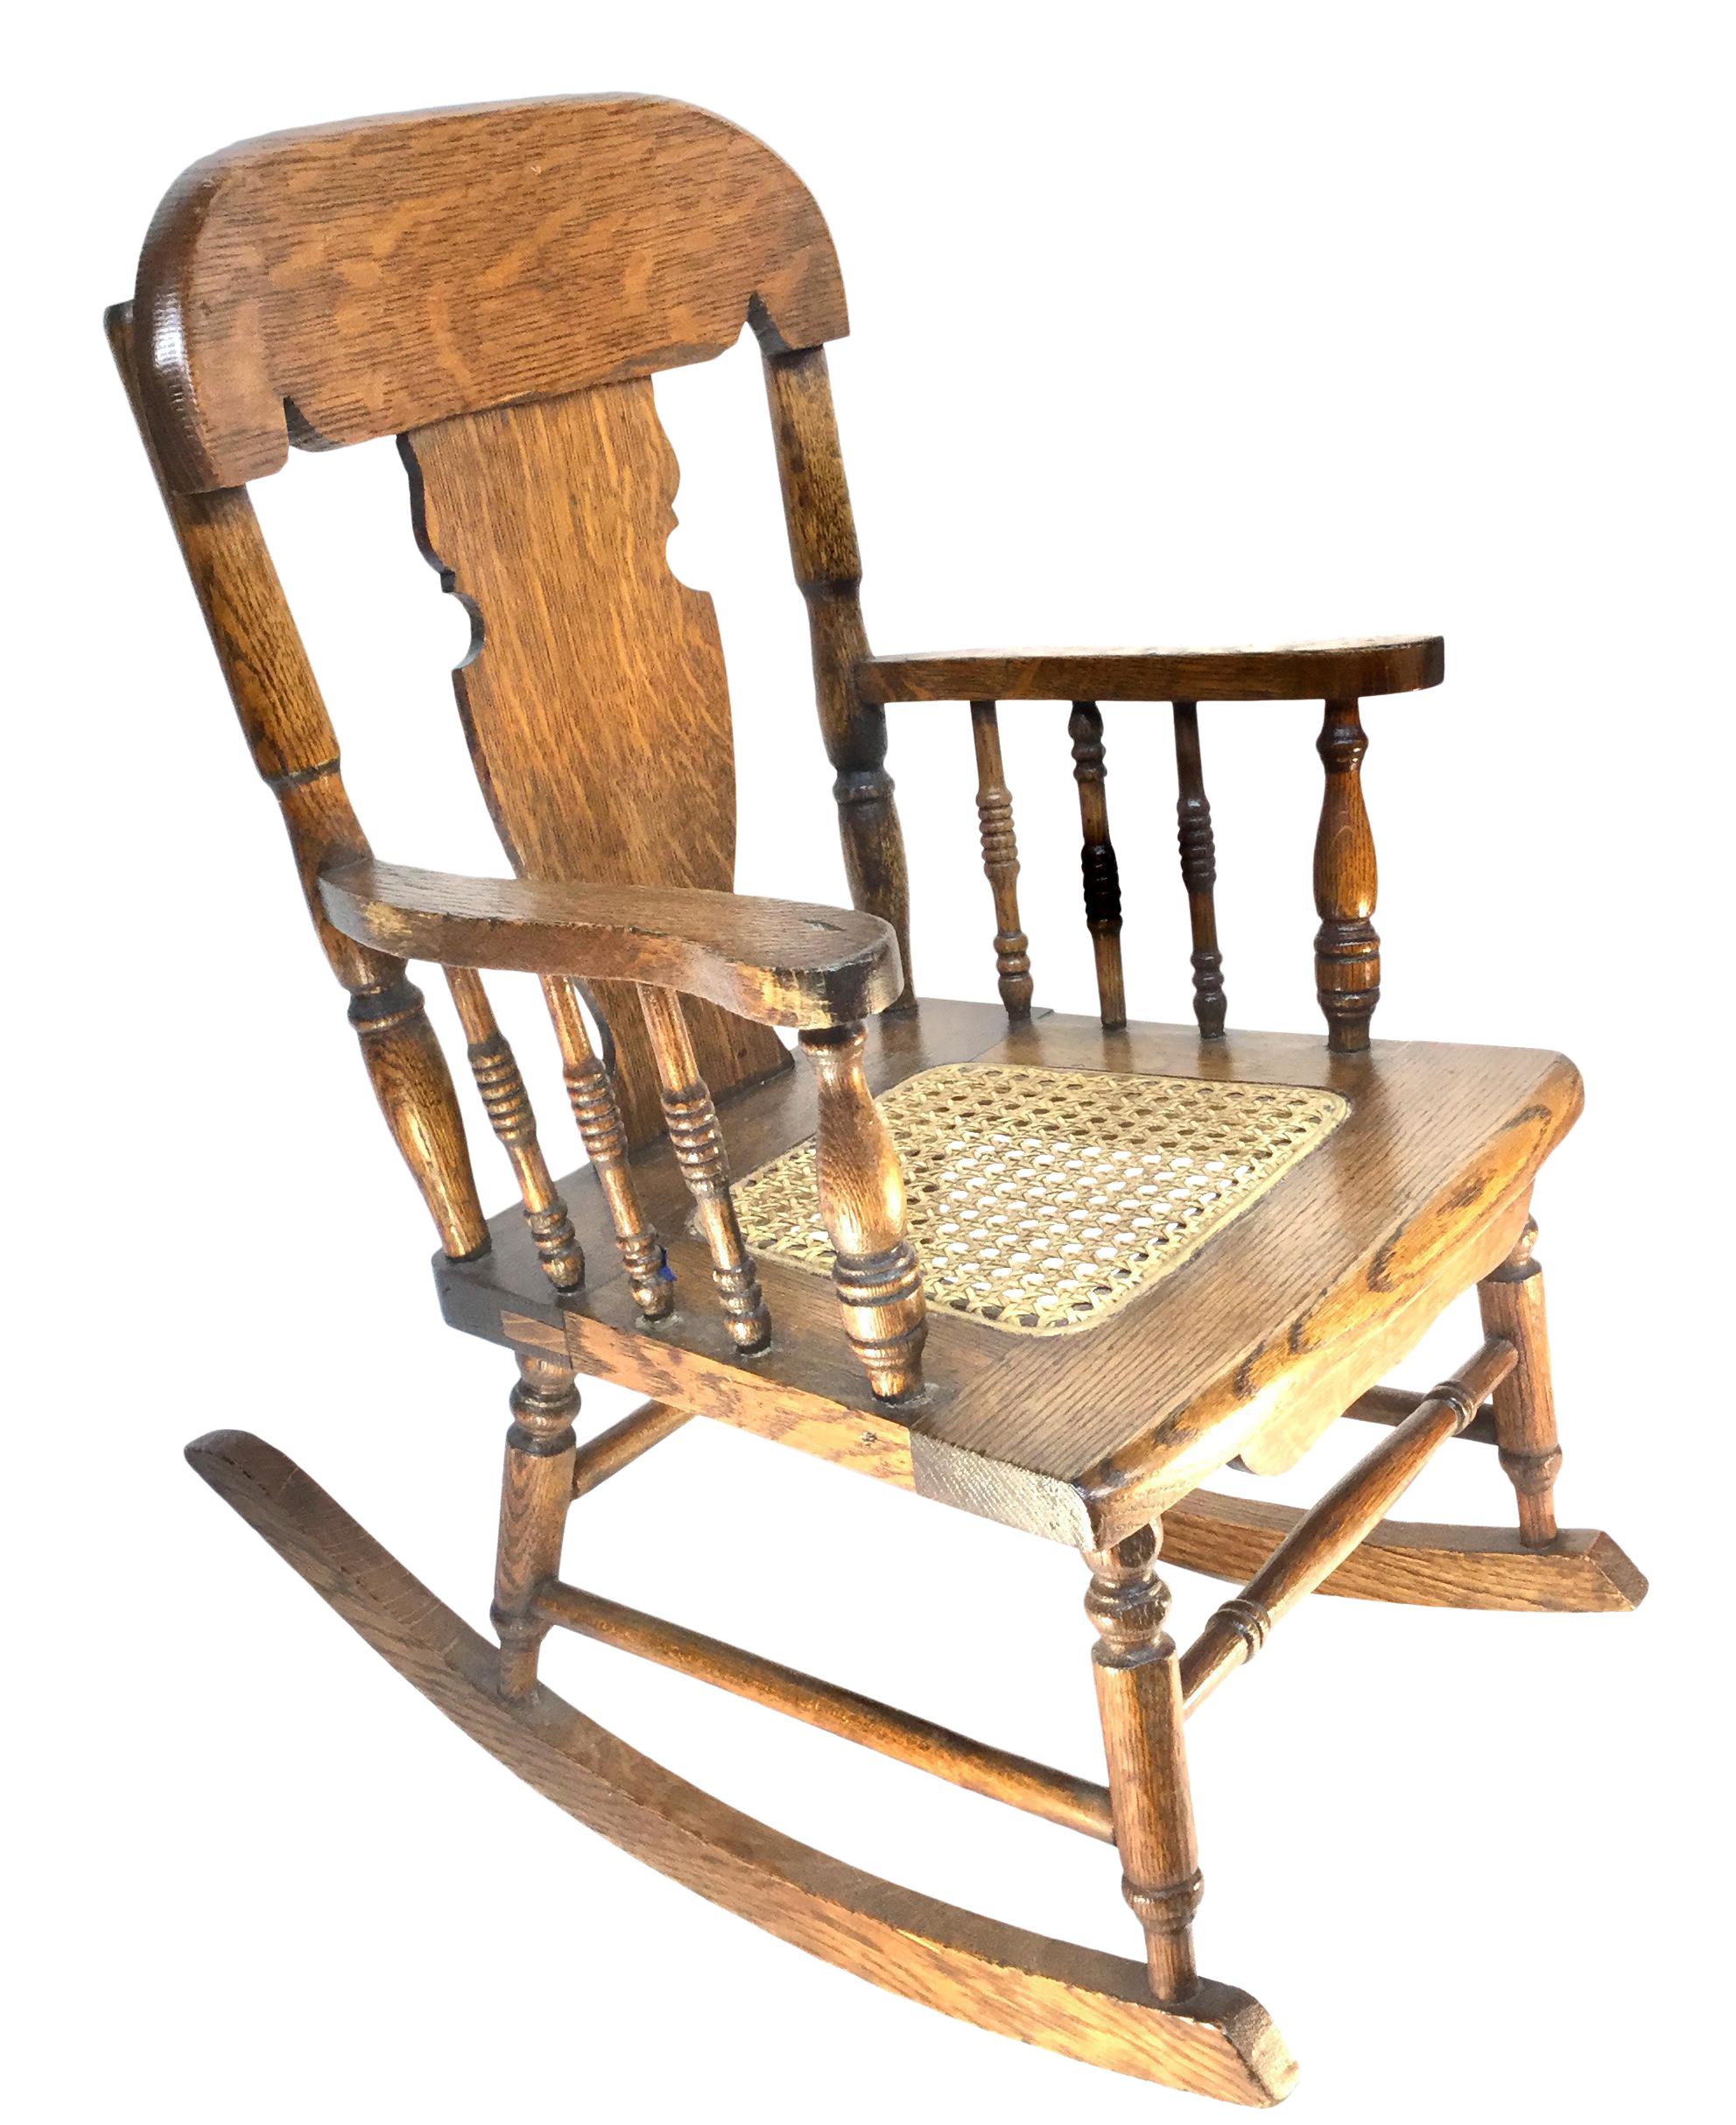 Tiger Oak Childrens Rocking Chair, Cane Seat, 1890 1920 For Sale